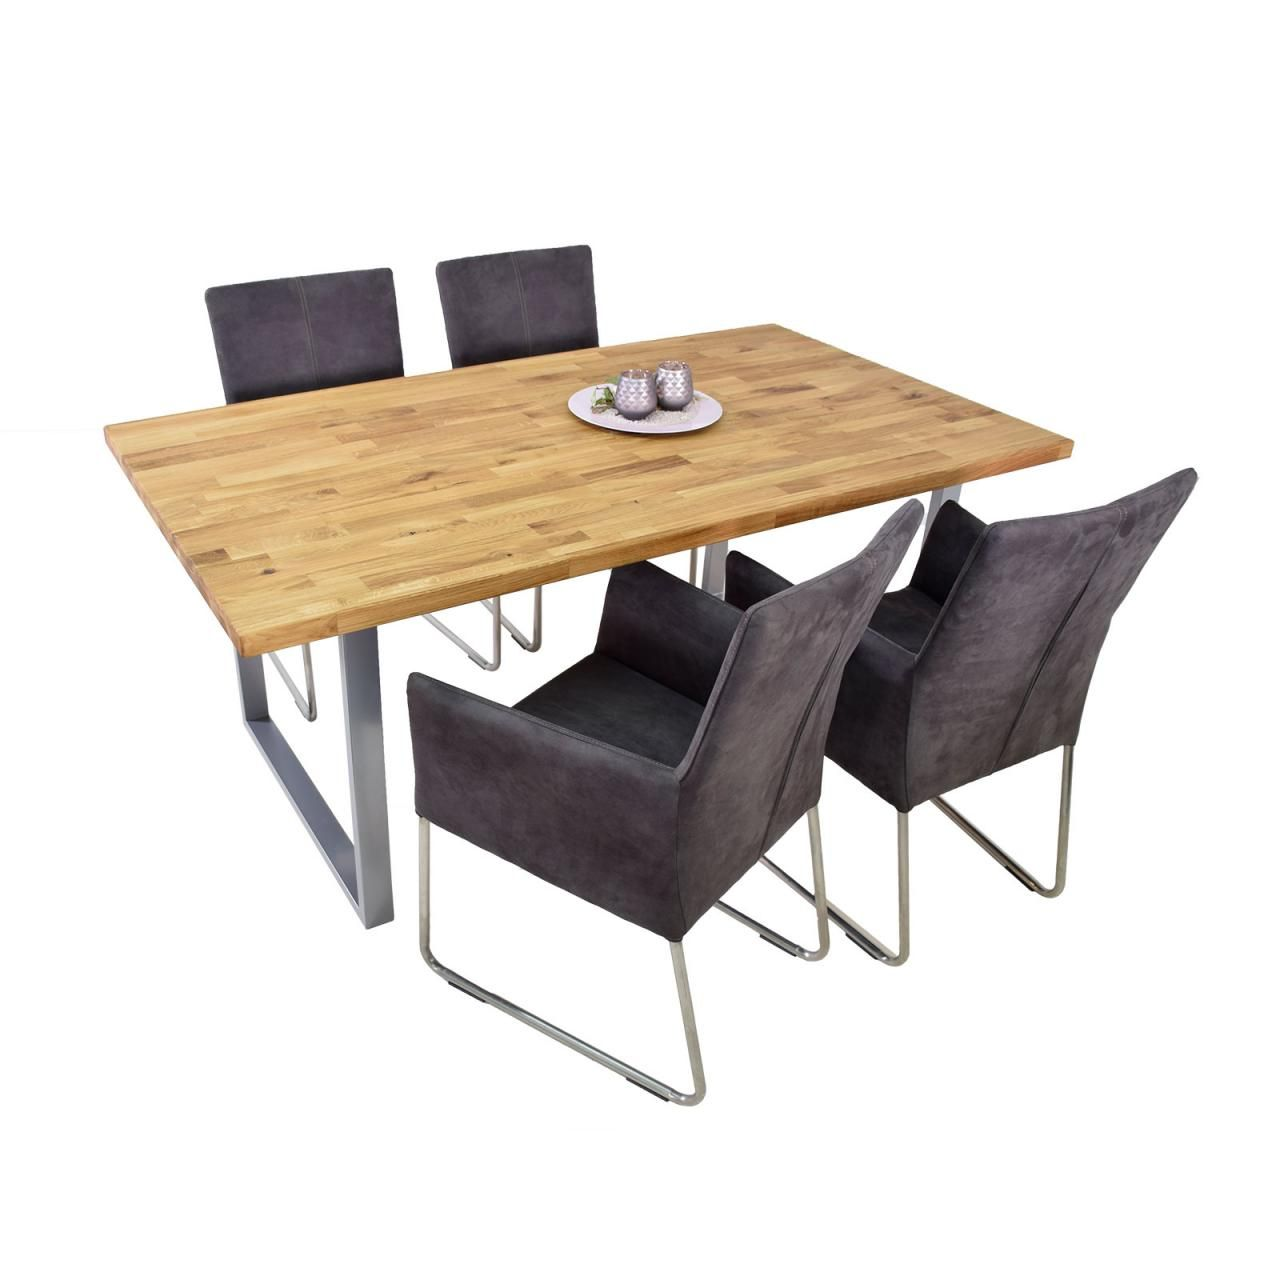 Esstisch Eiche Rustikal Beste Esstisch Eiche Rustikal Kitchentable Outdoor Furniture